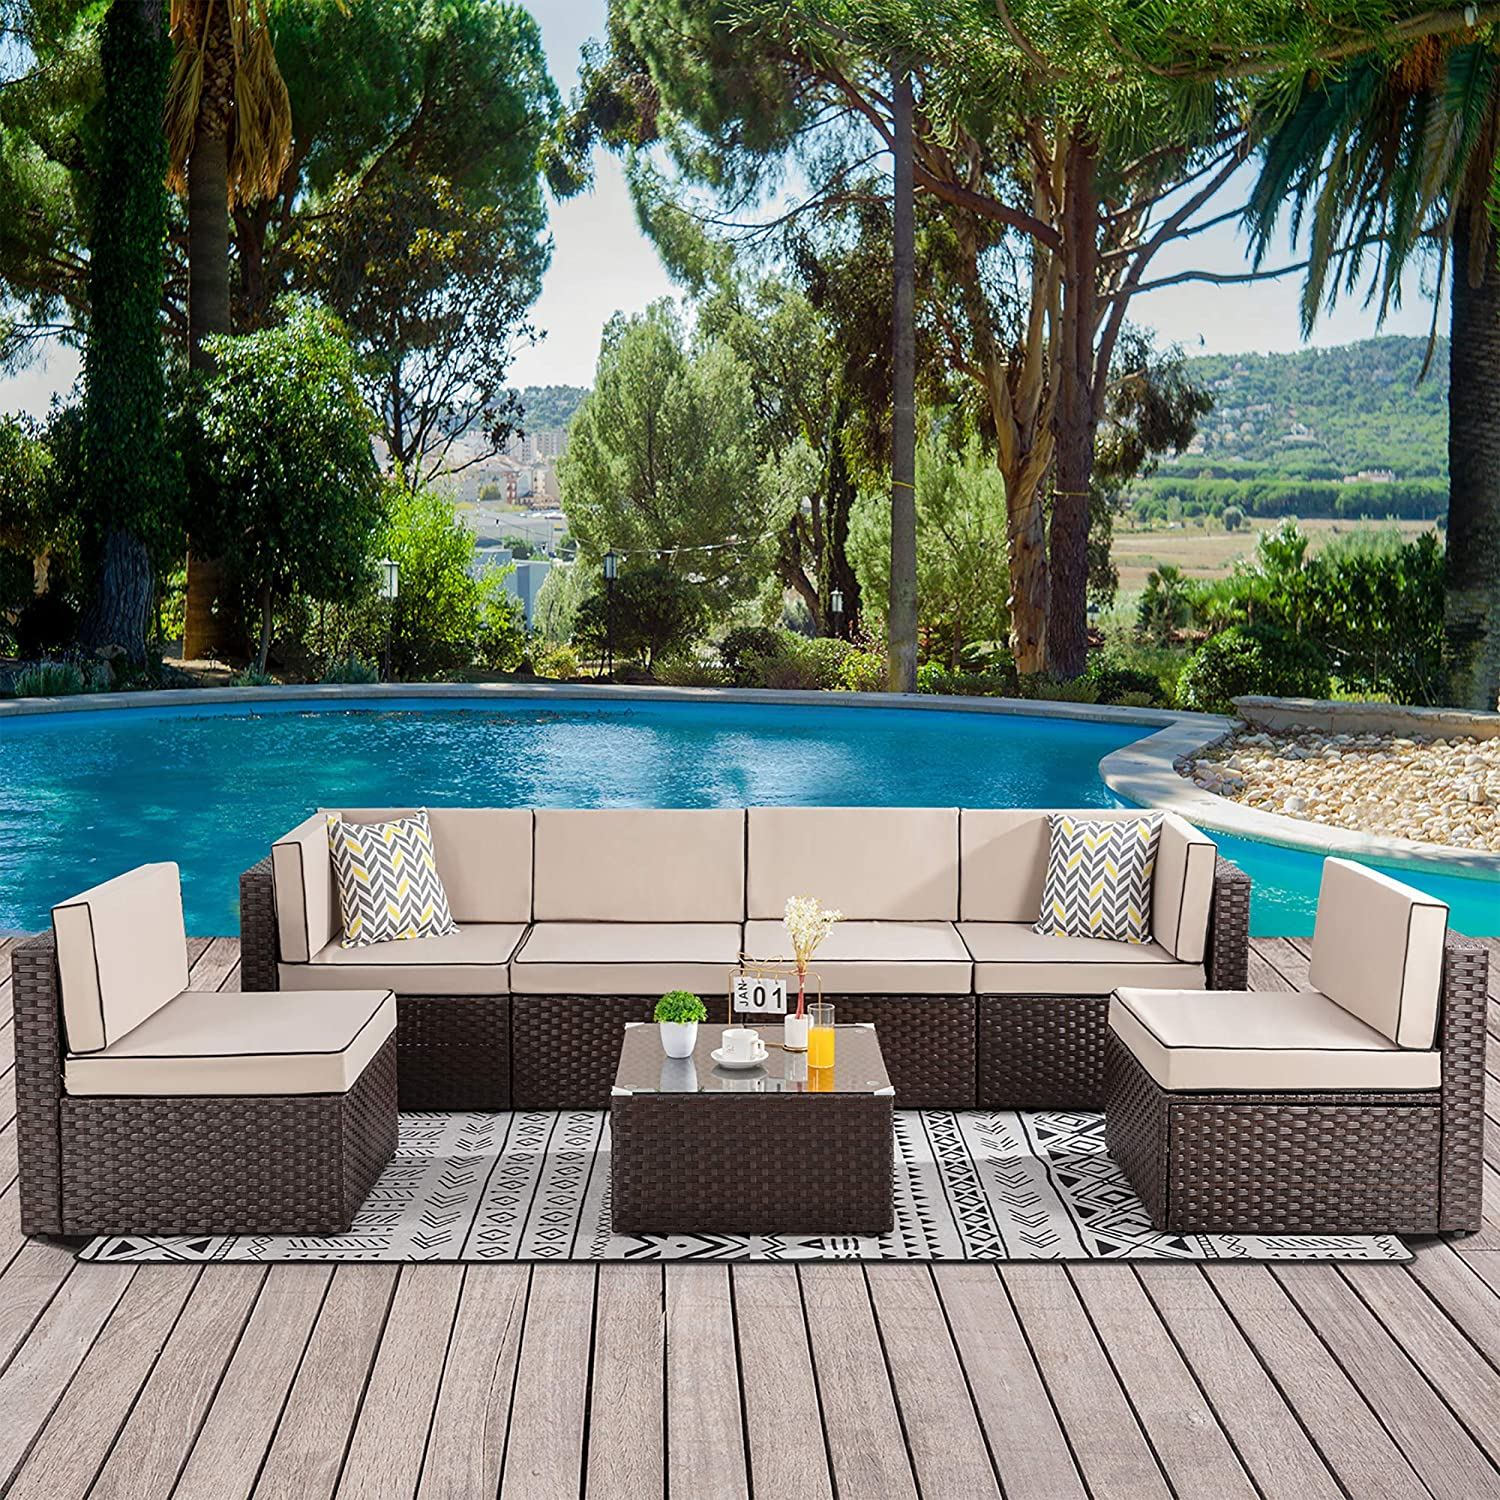 Walsunny 7 pcs Outdoor Brown Rattan Sectional Sofa Patio Wicker Furniture Set Conversation Sets with Tea Table&Washable Couch Cushions (Khaki)